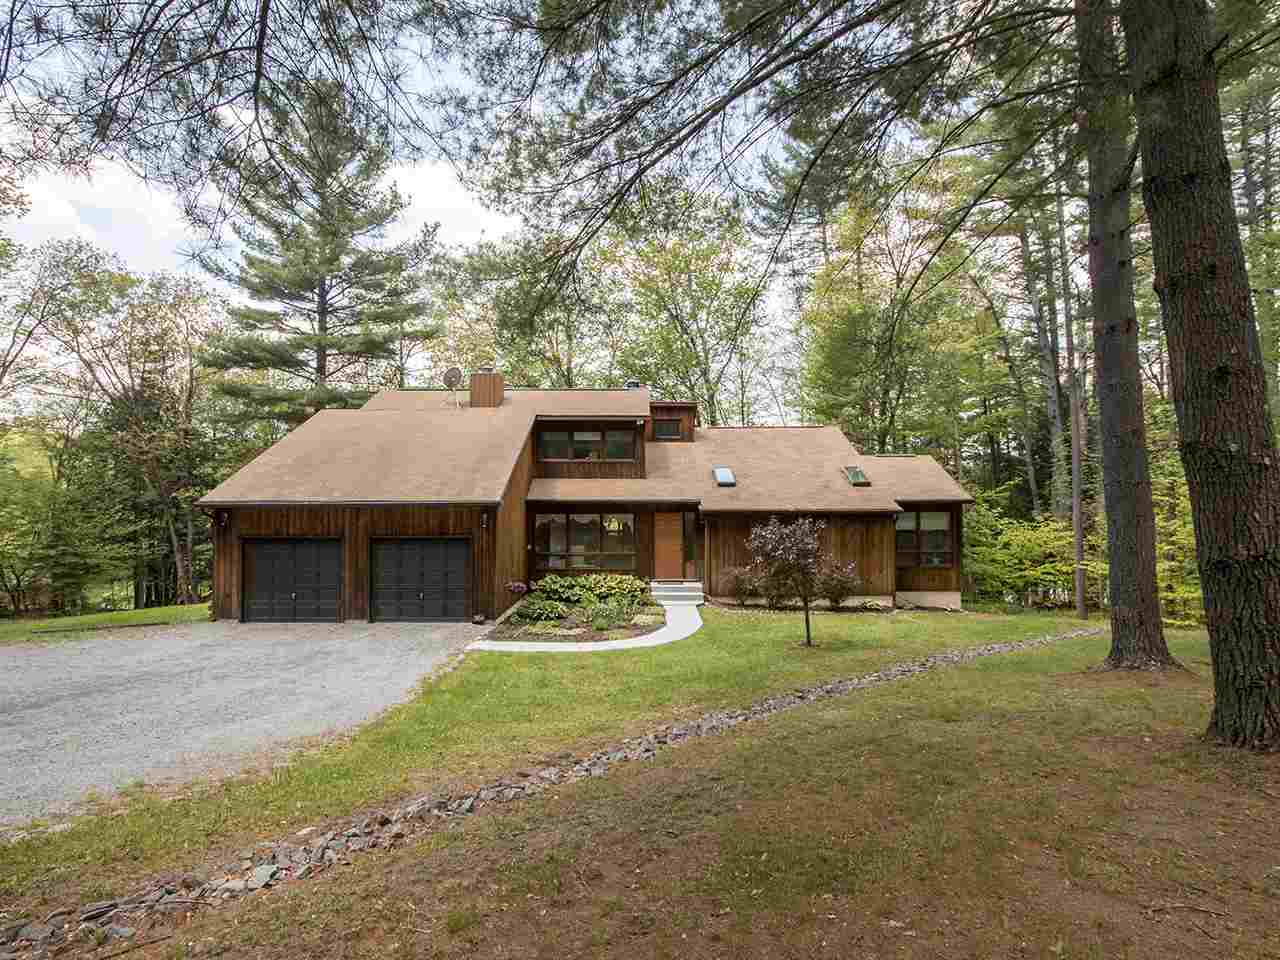 Image of Residential for Sale near Monticello, New York, in Sullivan county: 3.40 acres